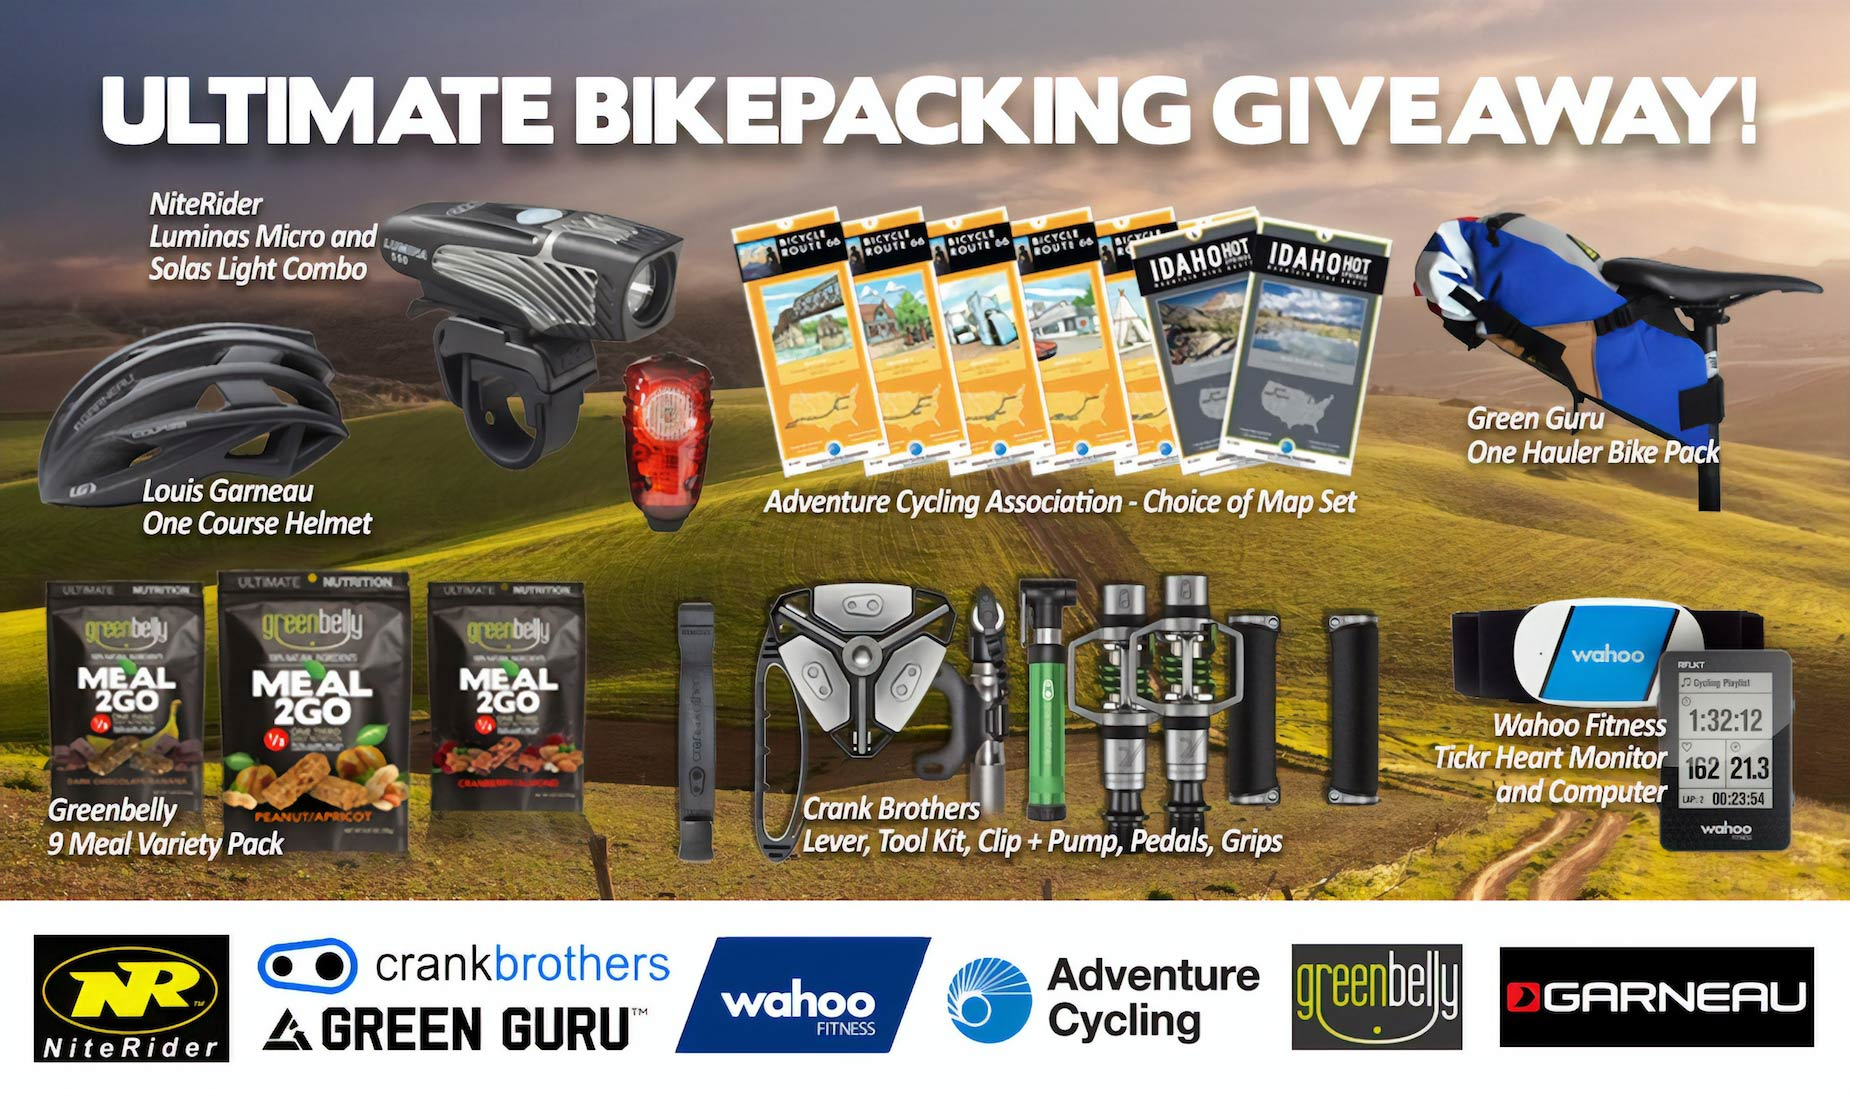 Ultimate Bickpacking Giveaway